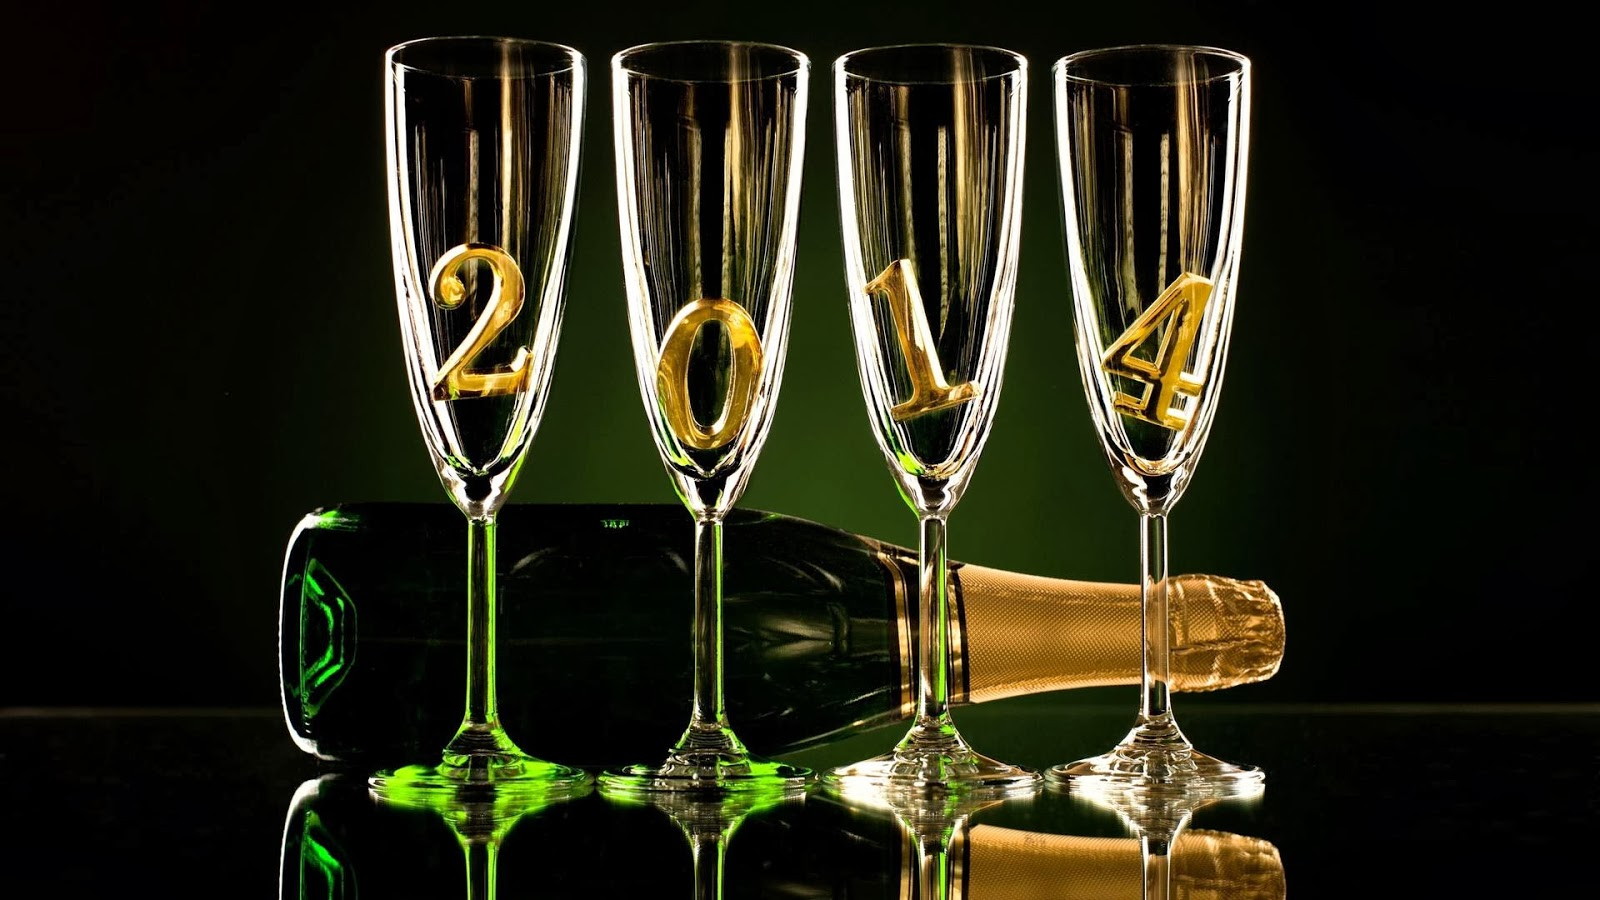 Happy New Year 2014 HD Wallpapers And Greetings